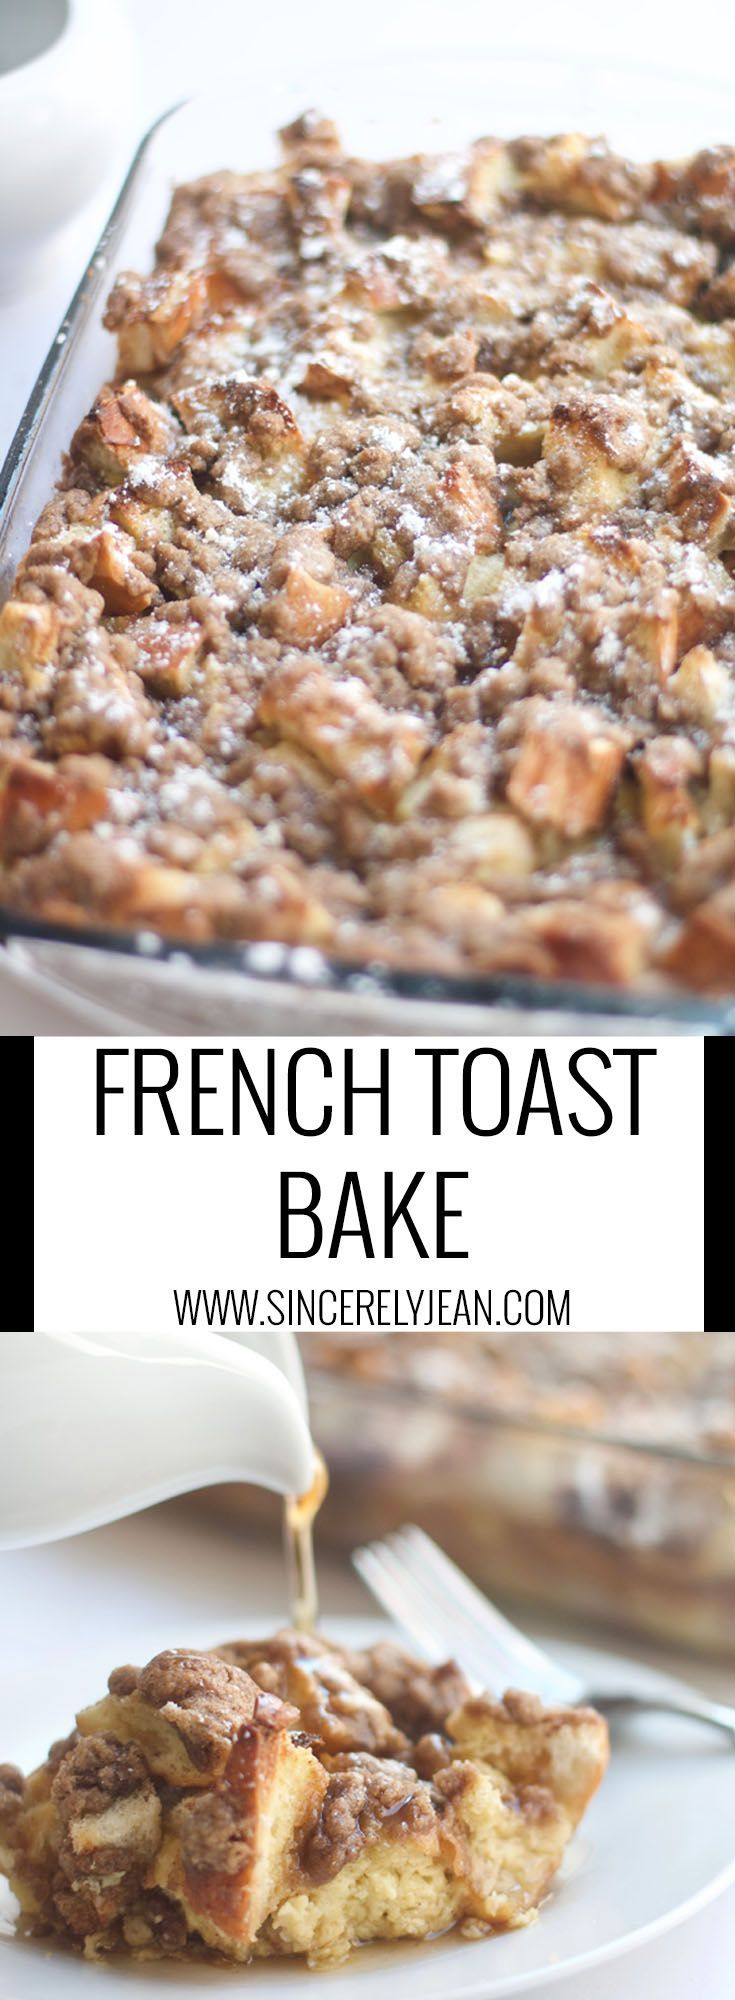 how to make french toast easy without milk